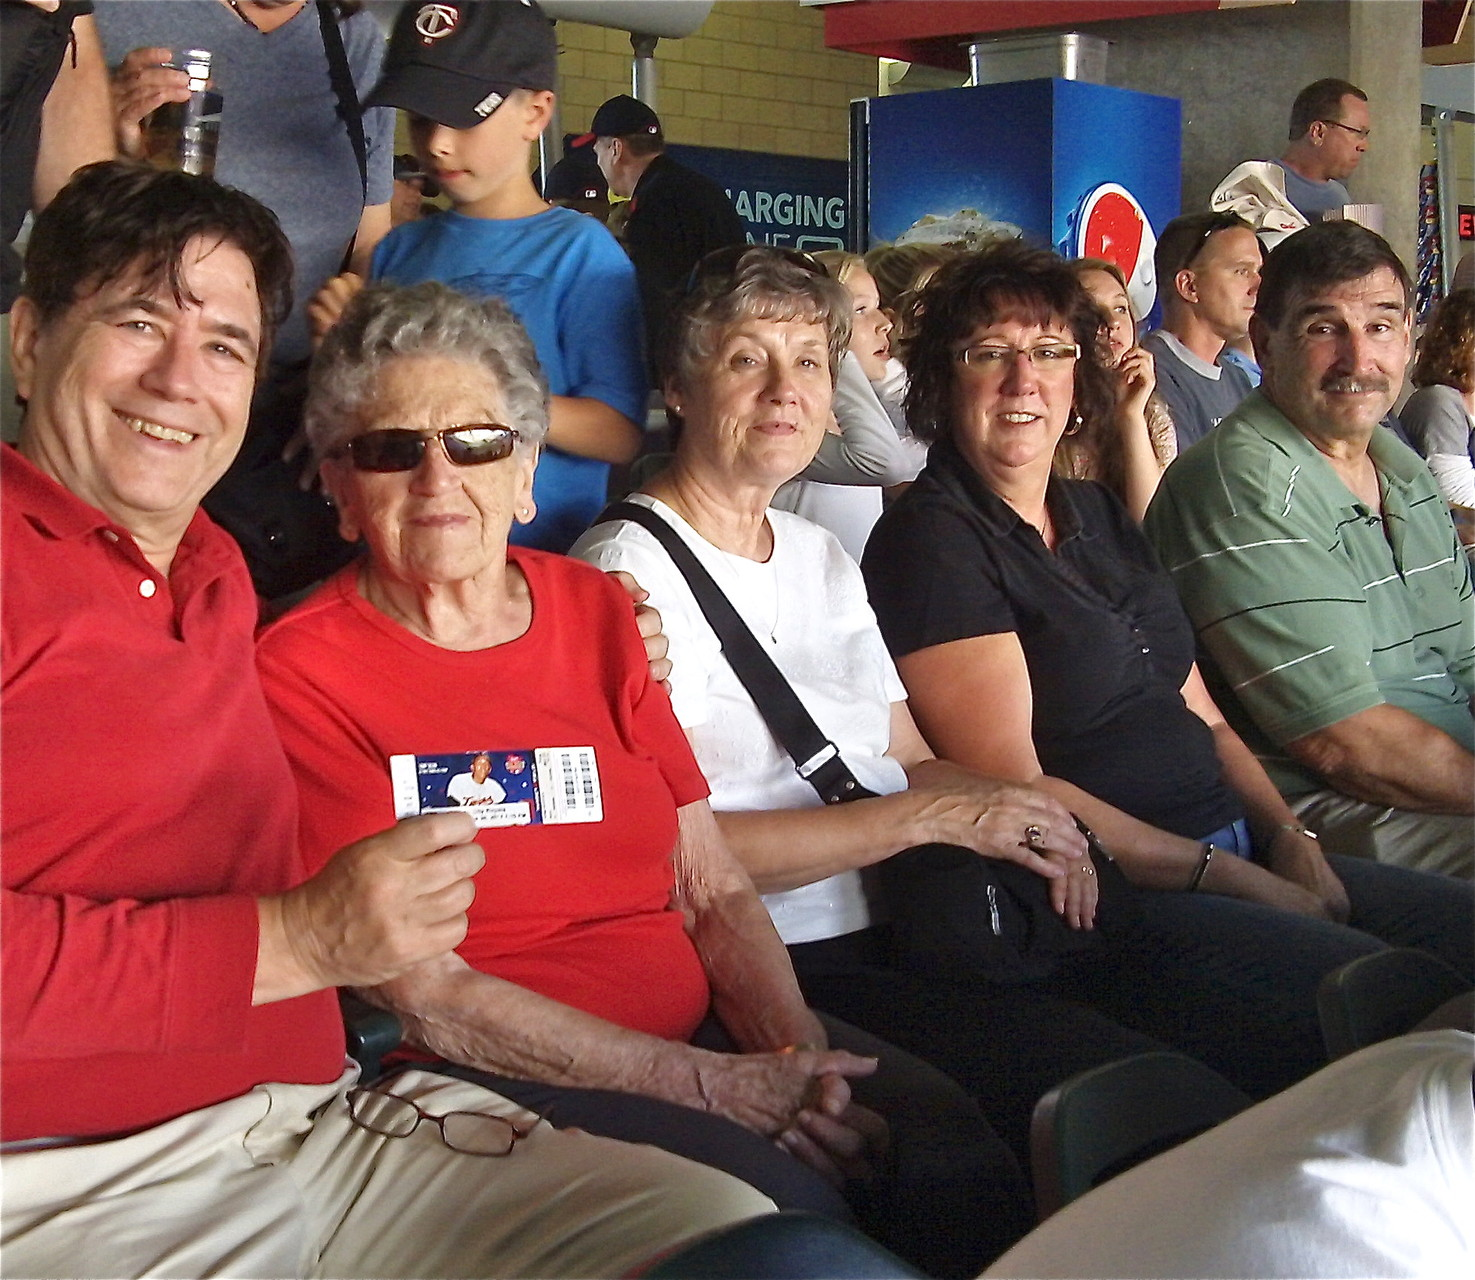 John, Mary Lou, Cindy, Jill & Paul Wagner, Mary Lou's Party Weekend! at the Twins game